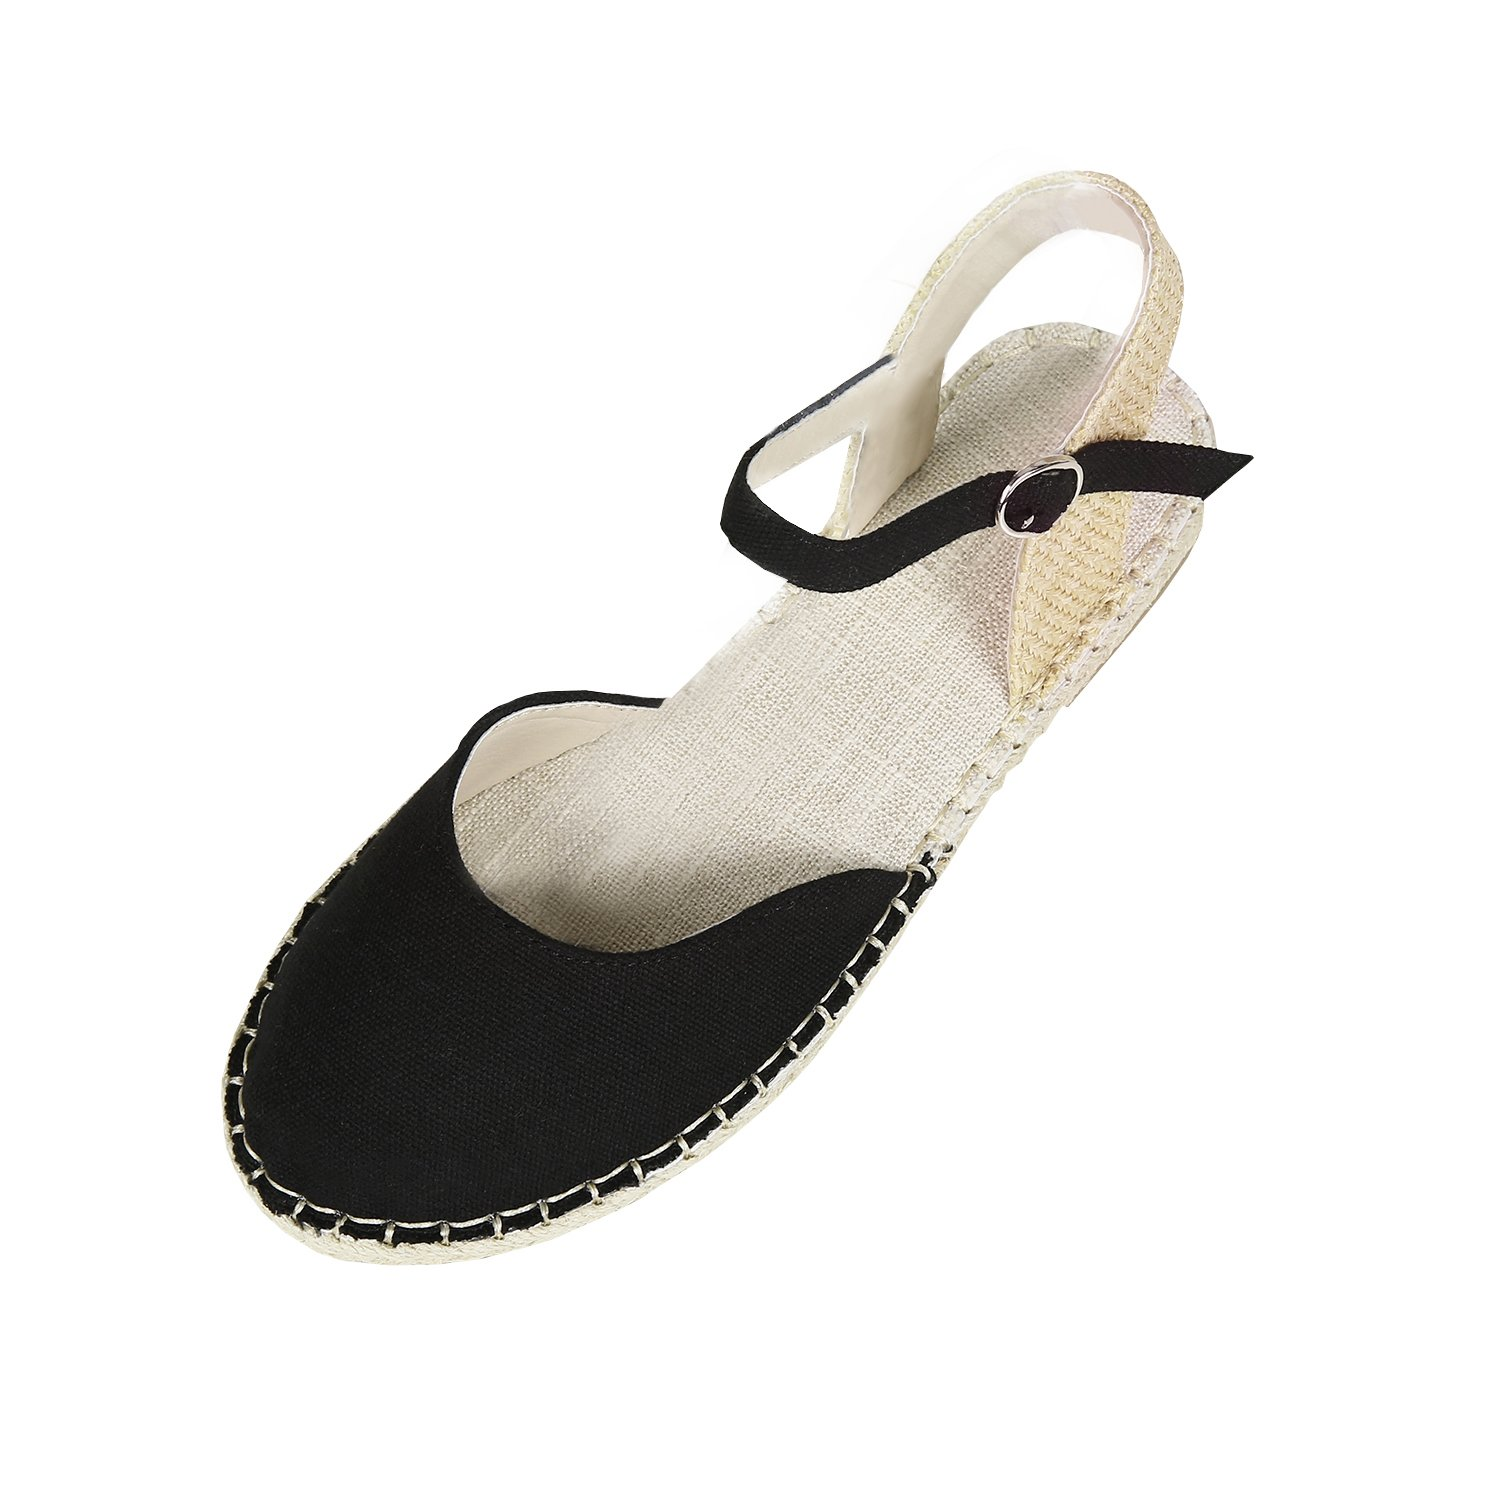 be2077ae2a3 Amazon.com  Coutgo Womens Ankle Wrap Espadrilles Flat Sandals Cut Out  Platform Sandals Summer Shoes  Clothing